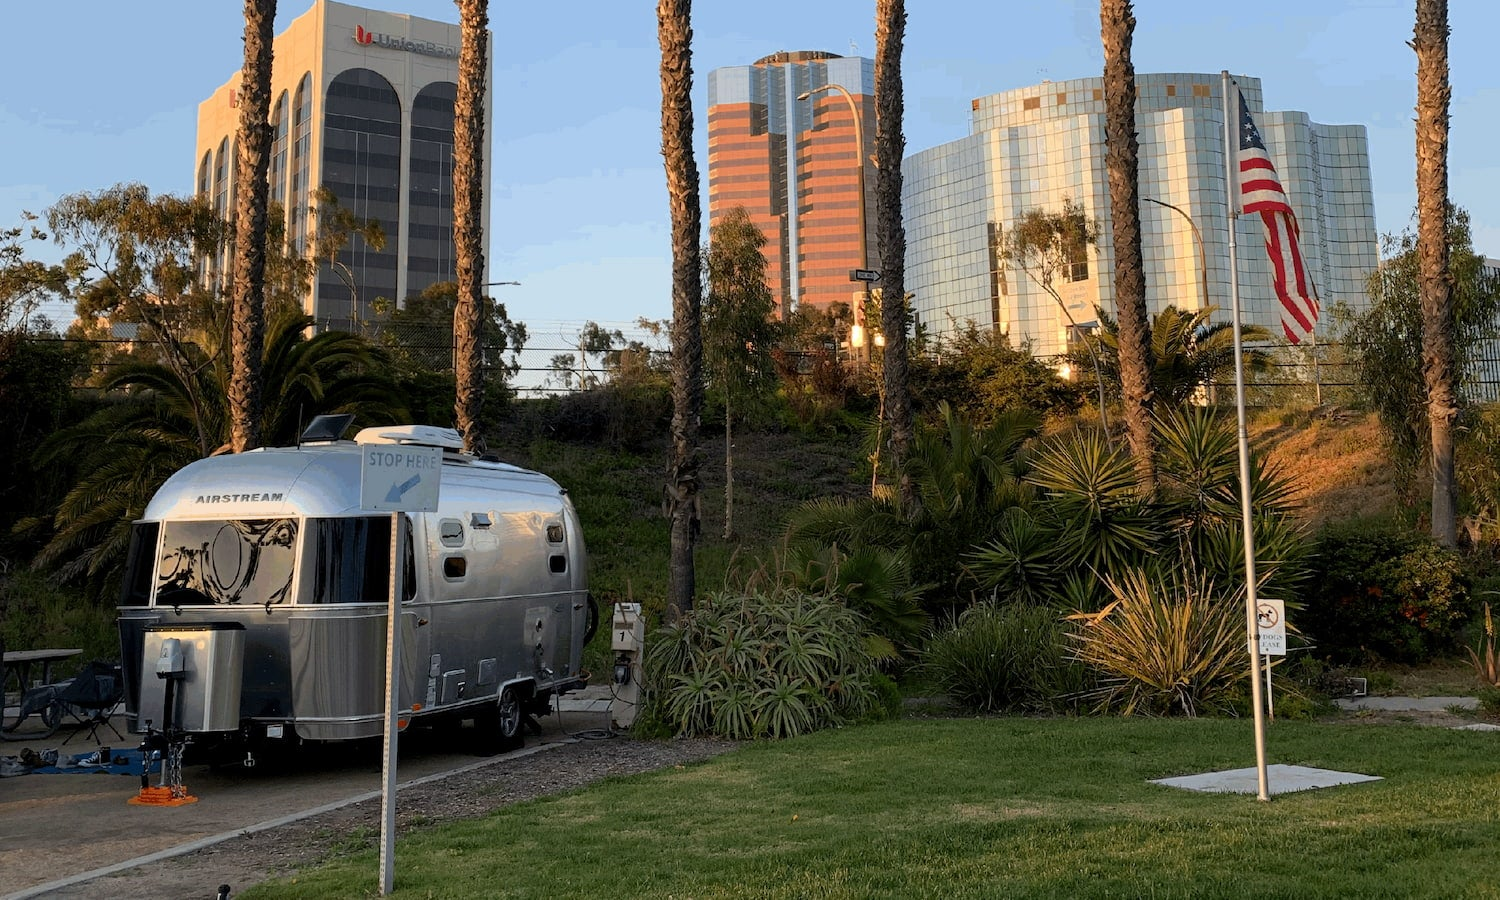 airstream parked at rv park infront of buildings